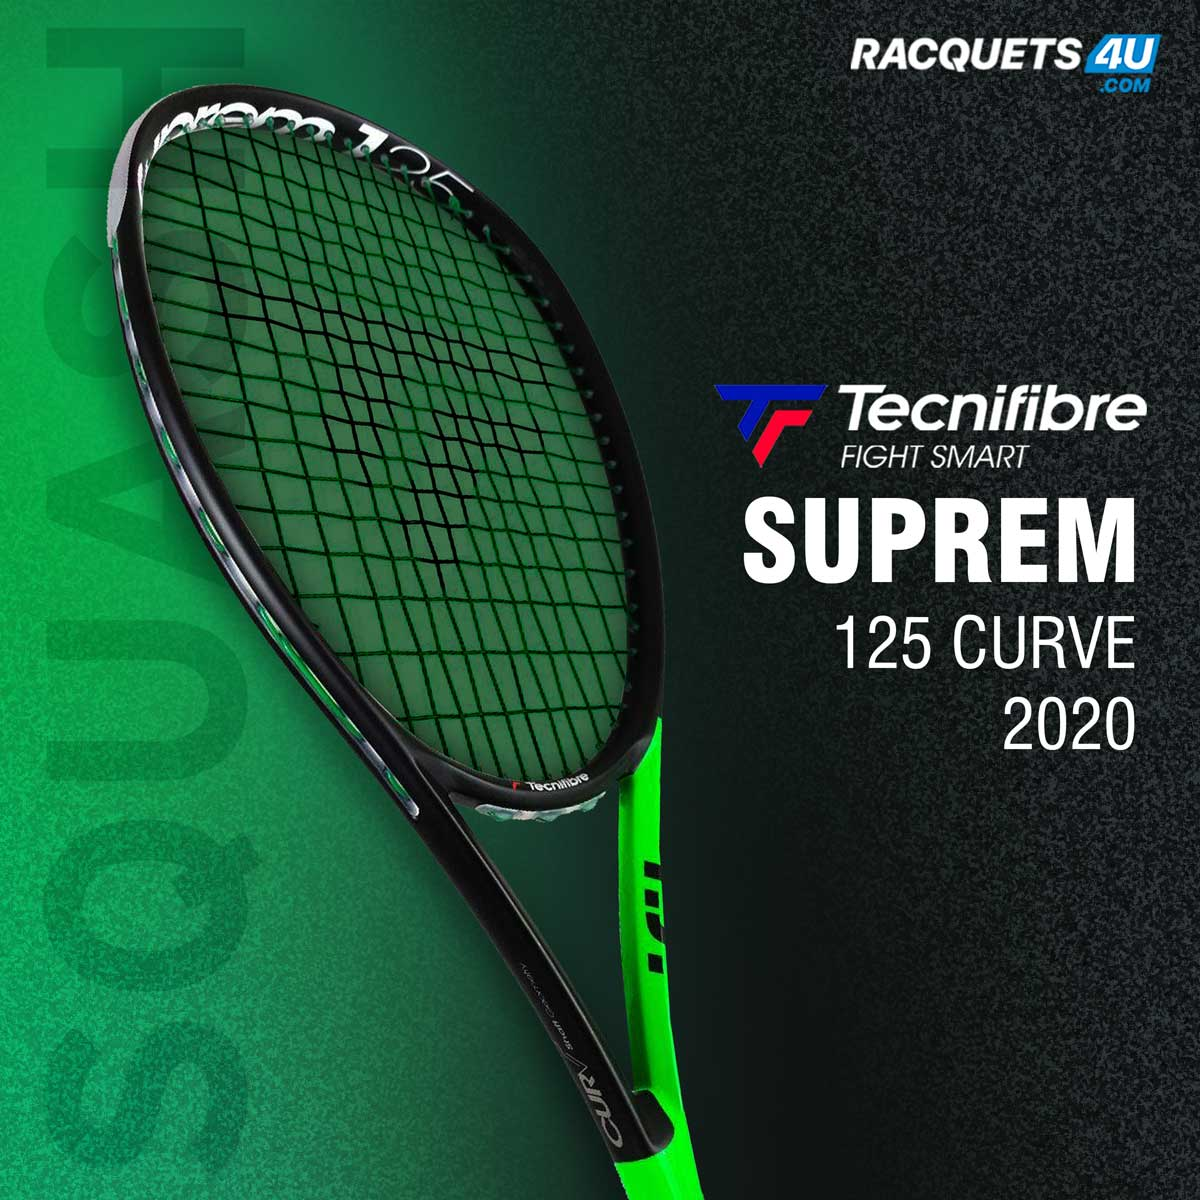 Unleash the supreme. Take a closer look at TECNIFIBER  Supreme 125 curve 2020. It comes with 470cm2 head size designed to provide excellent control.  Get it here -   #Racquets4U  #TECNIFIBRE  #Squash  #Racquet    #thursdaymorning #thursdayvibes